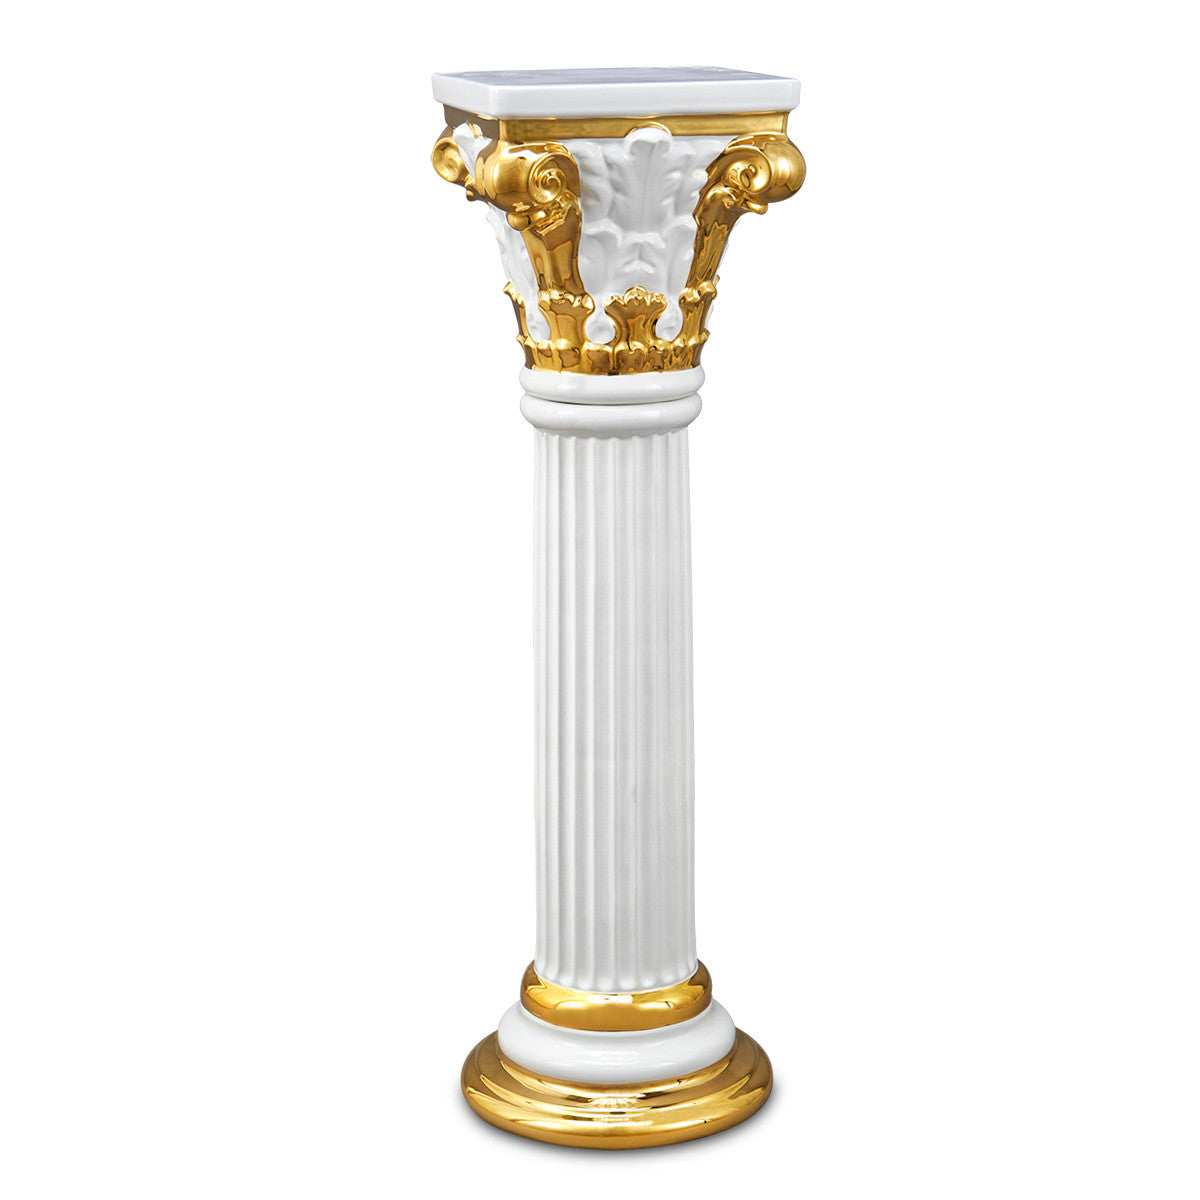 Ceramic decorative column